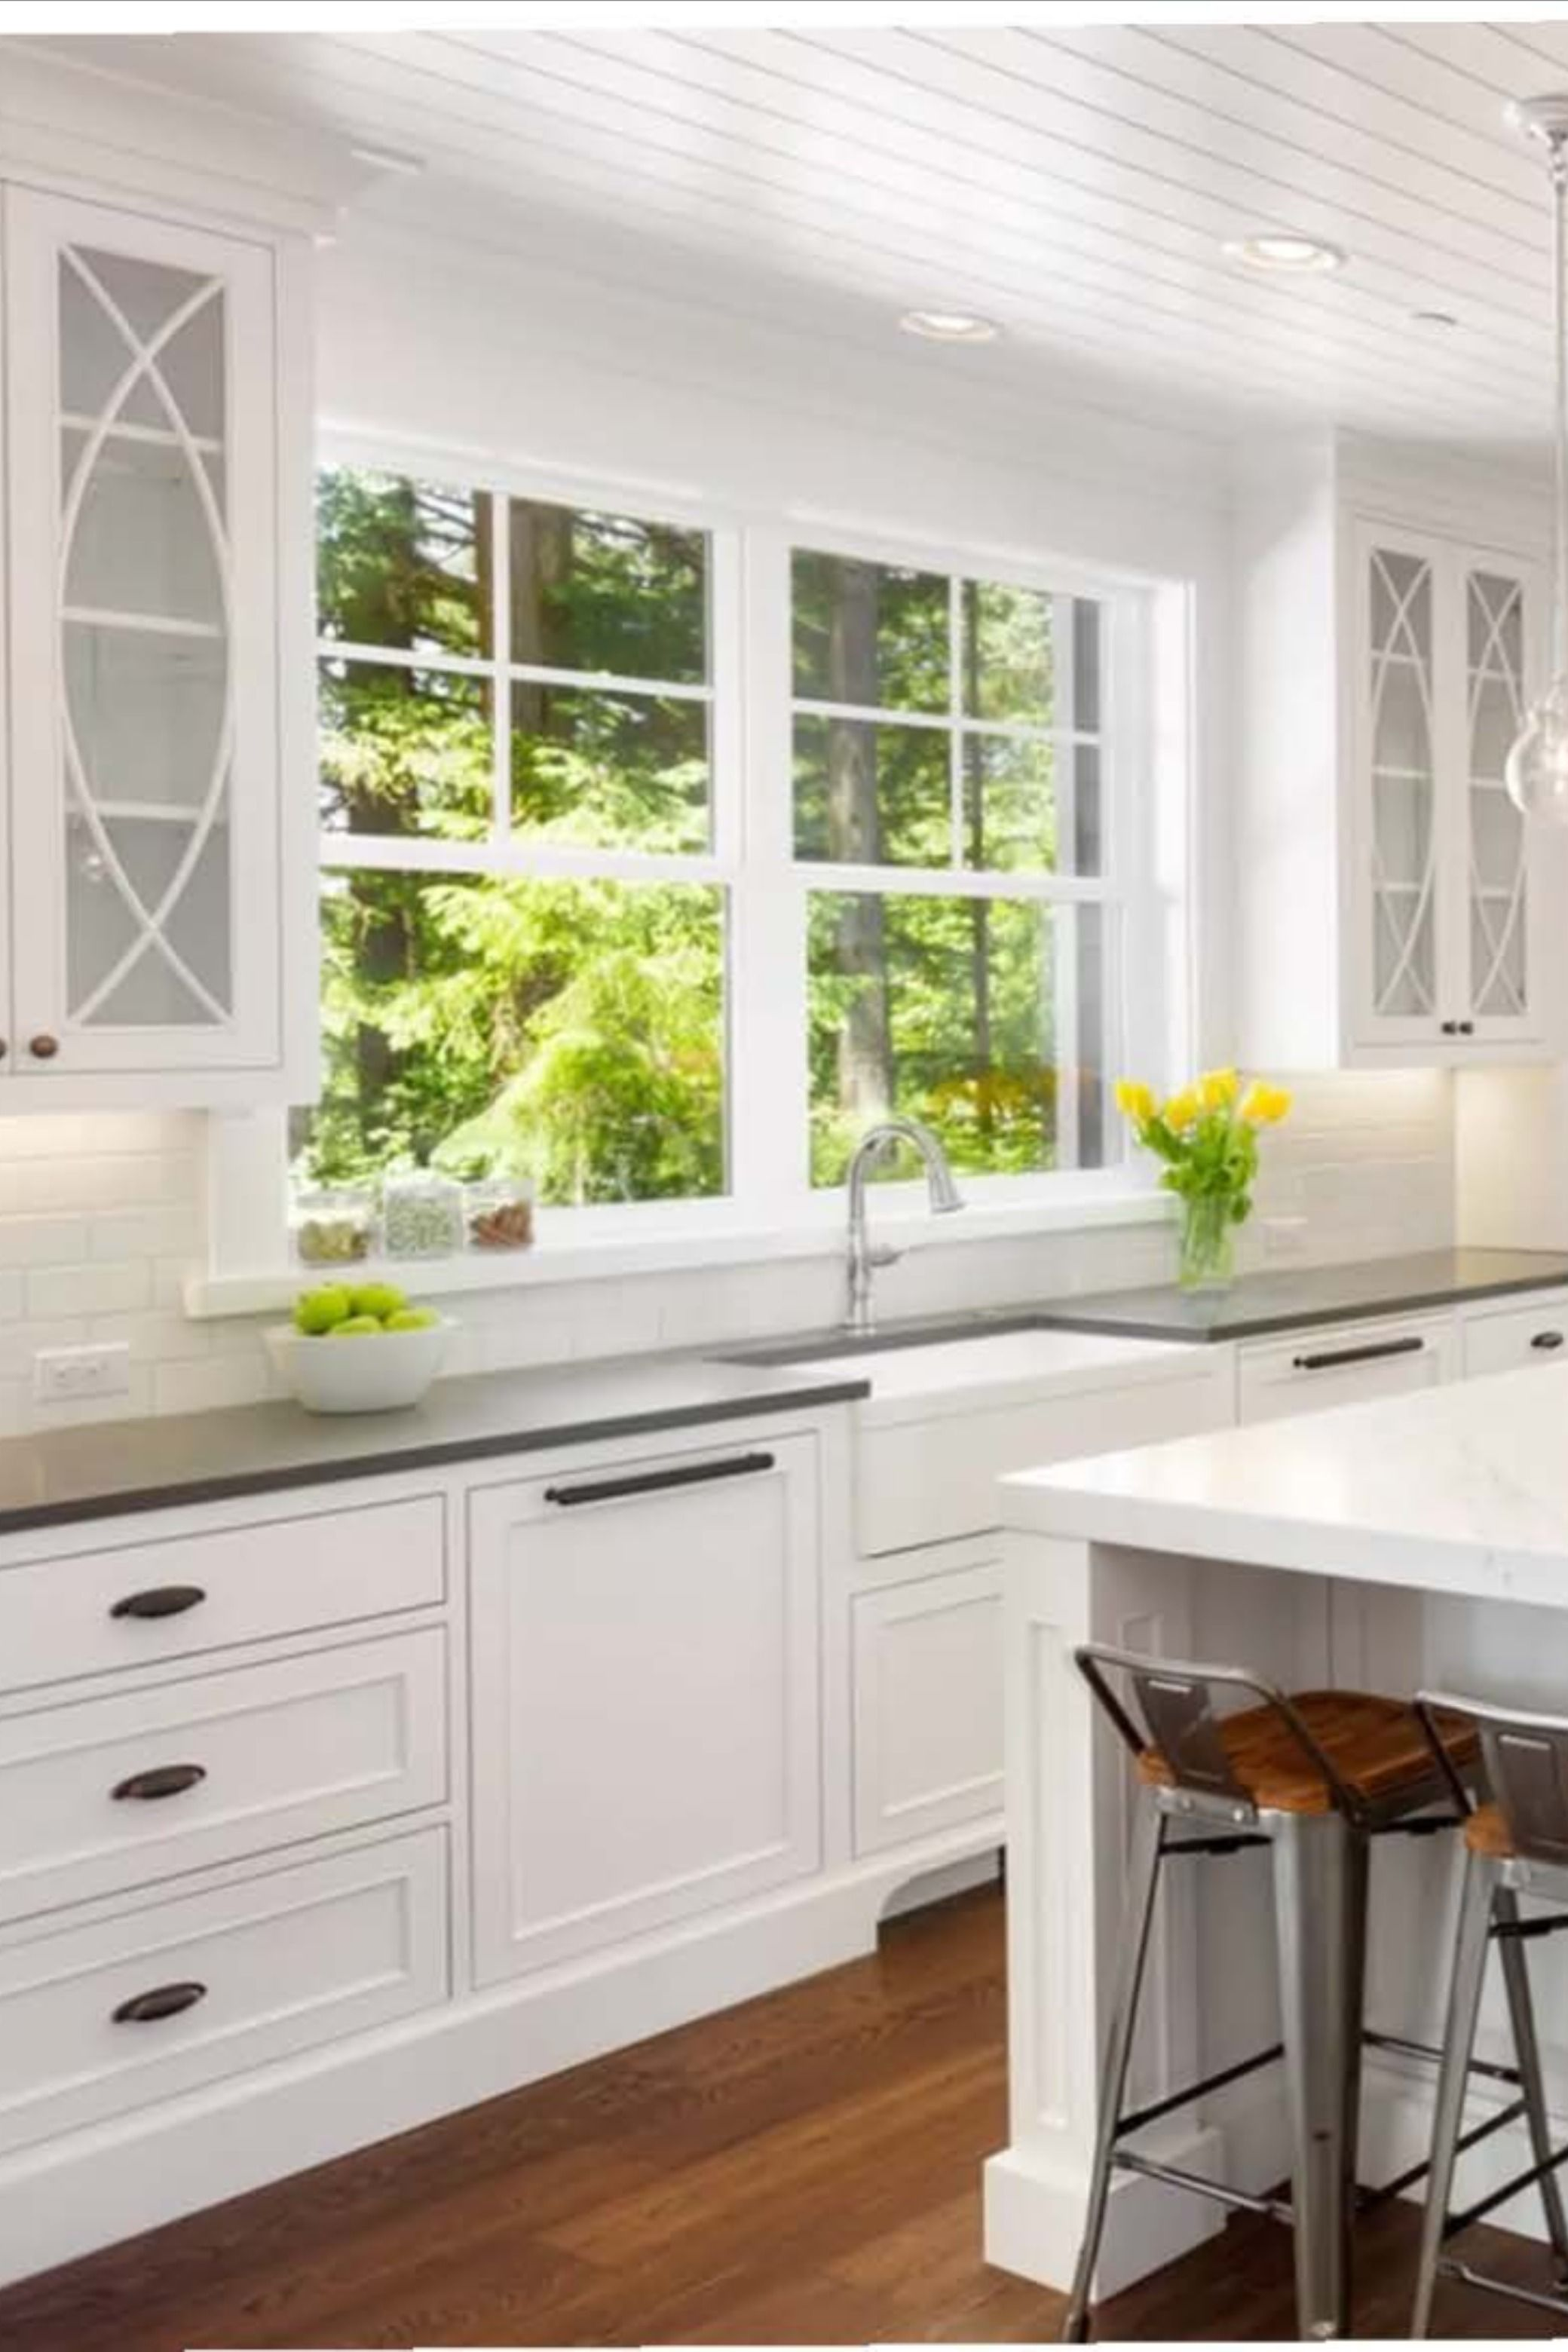 Your minimalist dreams come true! ☺️ This white kitchen interior design highlighted with darker accents really opens up this space 🤍🌳 #whitekitchen #minimalisthome #minimalistdecor . . . . . Find ideas and inspiration for your kitchen decor with Catani Cabinets on Pinterest and IG! 💭📌 Click the link in below to learn more about our kitchen remodel services for the Minneapolis and St. Paul areas! 🚪⚒️